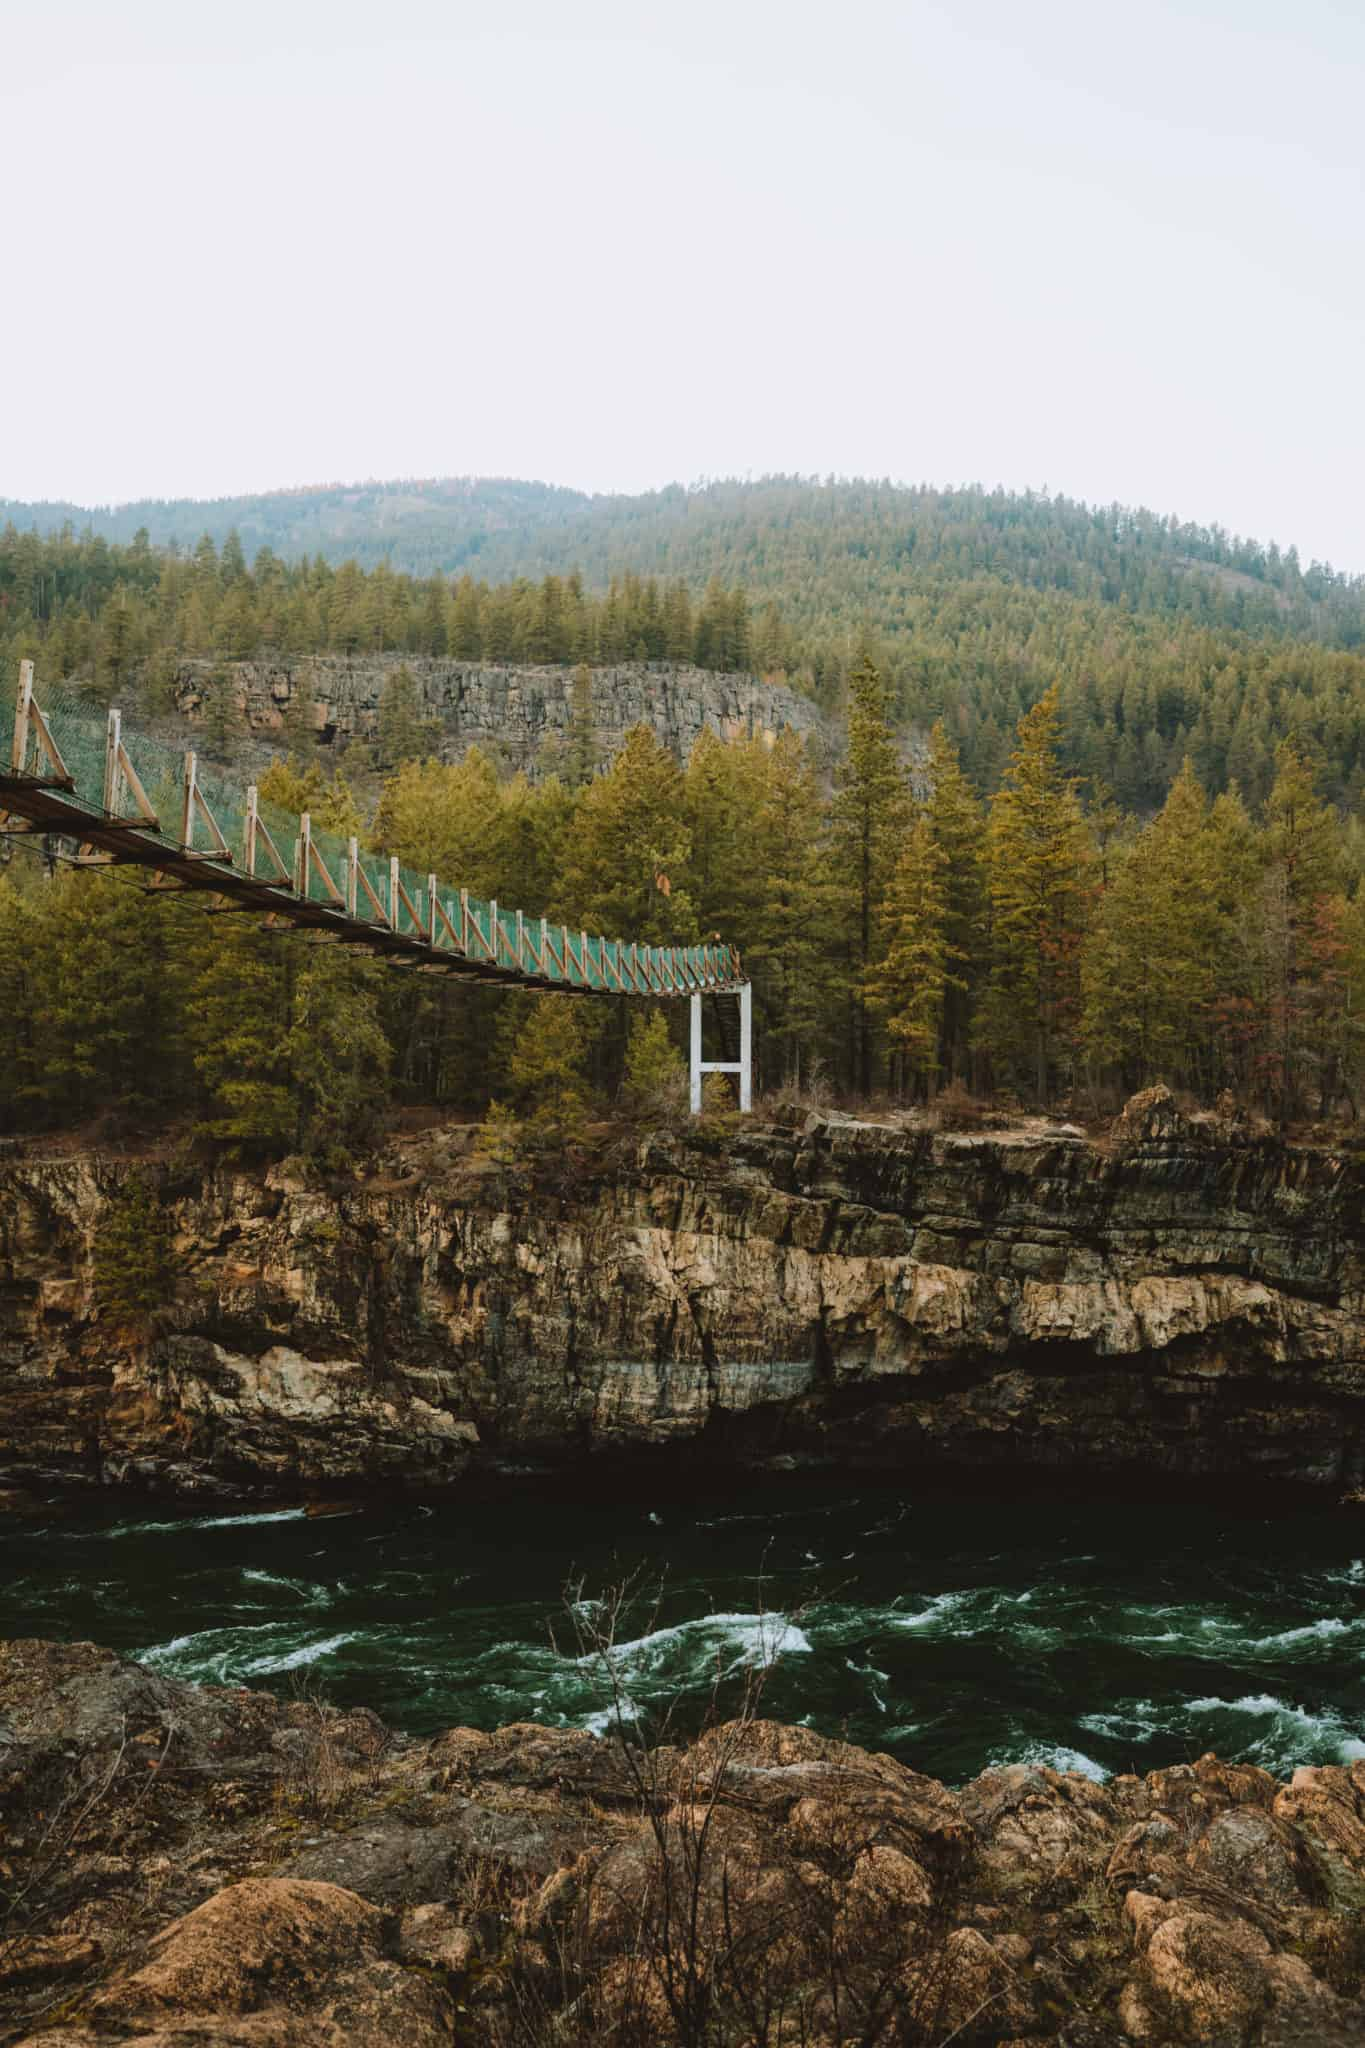 Kootenai Falls Swinging Bridge view from below